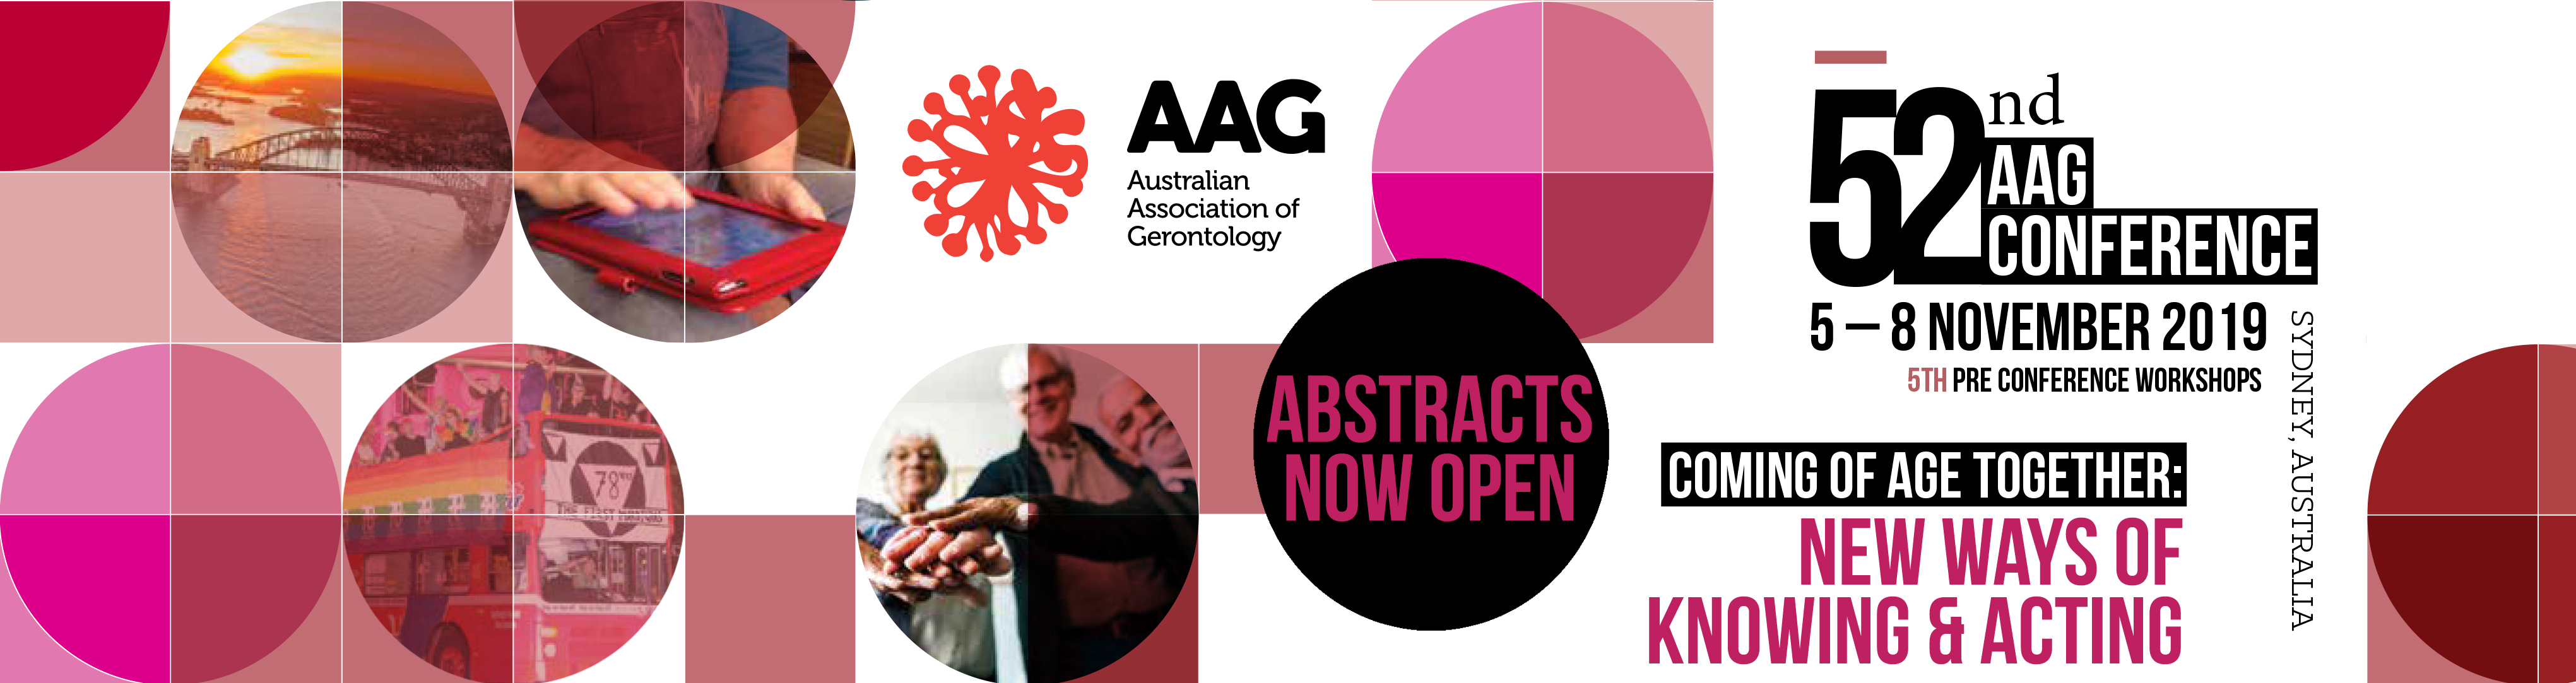 2019 AAG Conference Abstracts now open